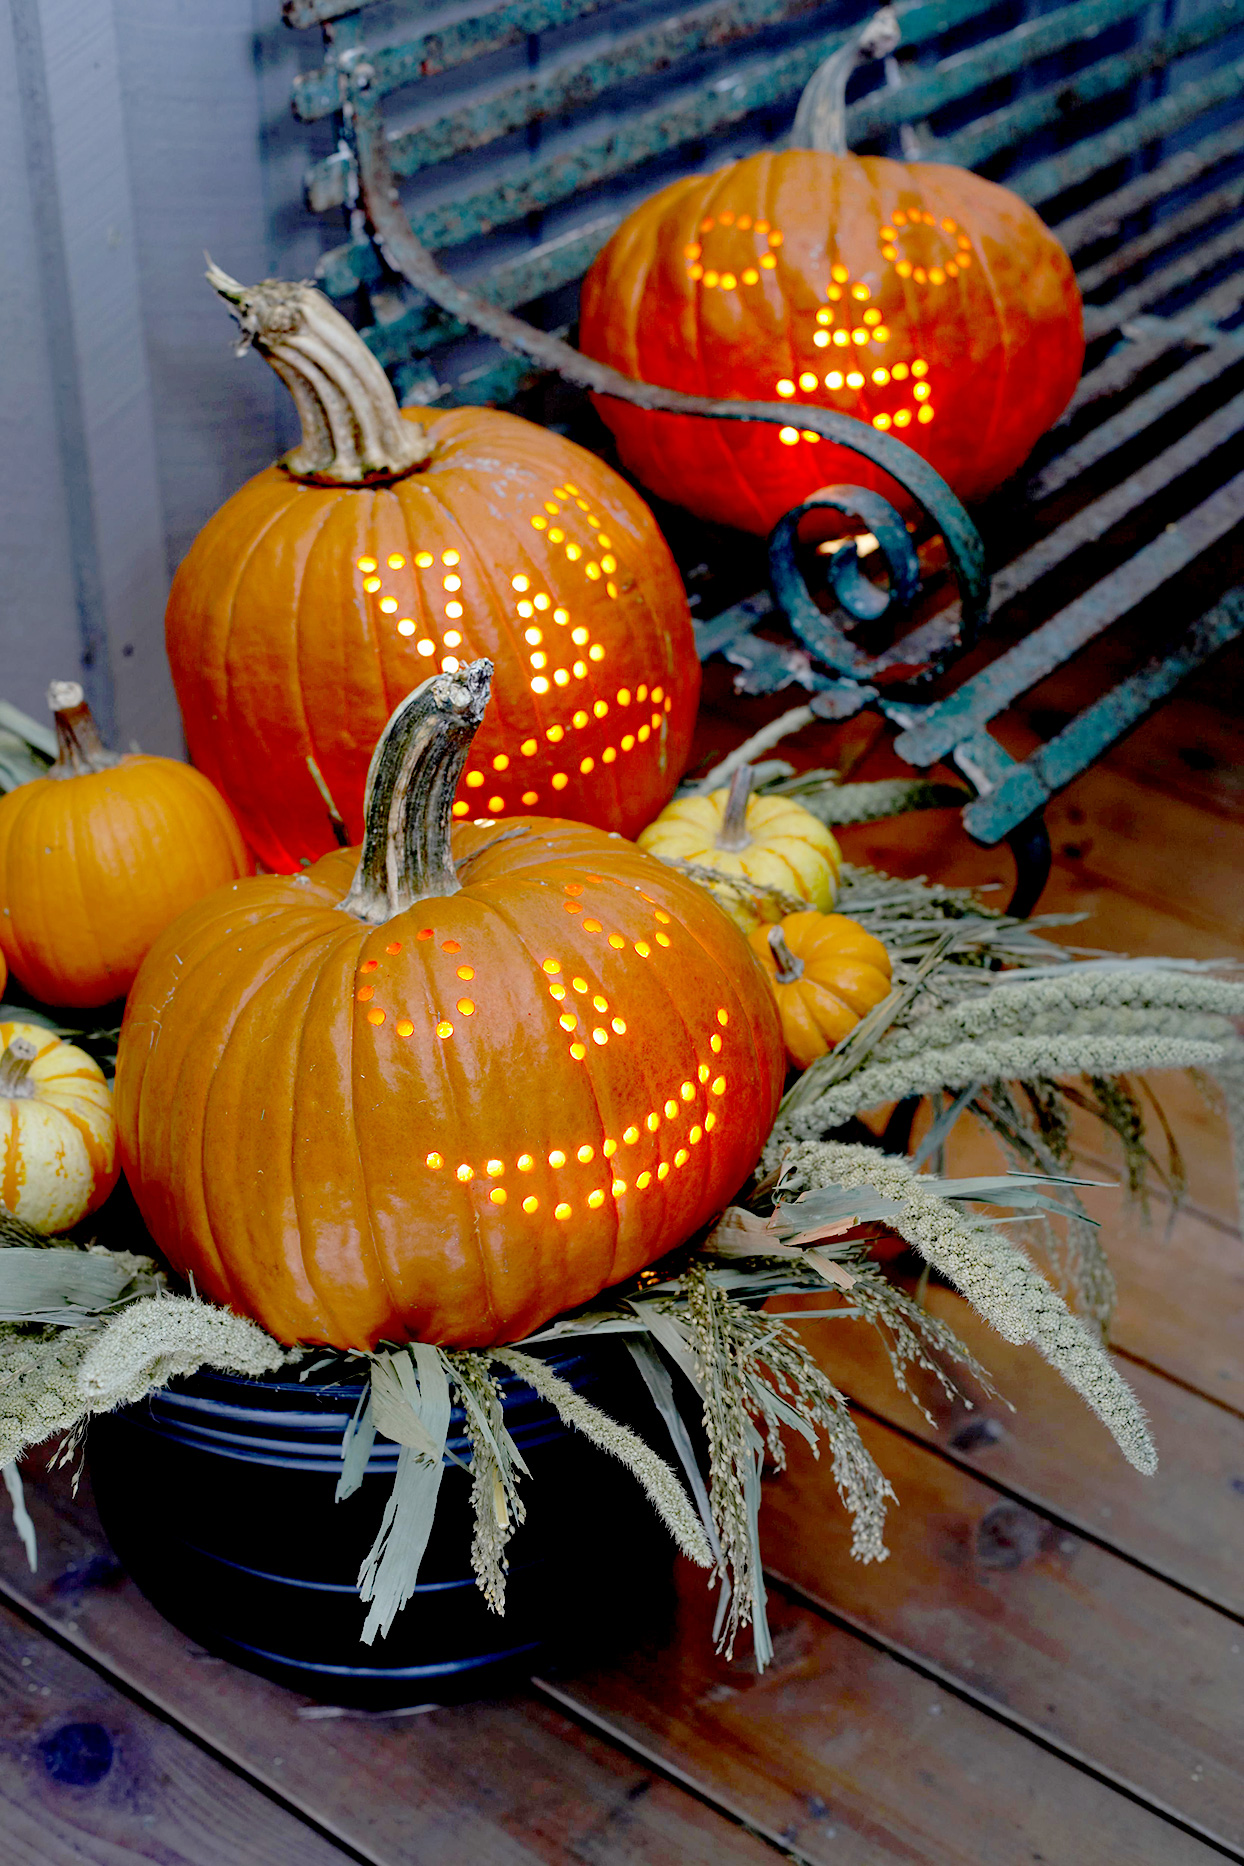 Three pumpkins carved with drill holes